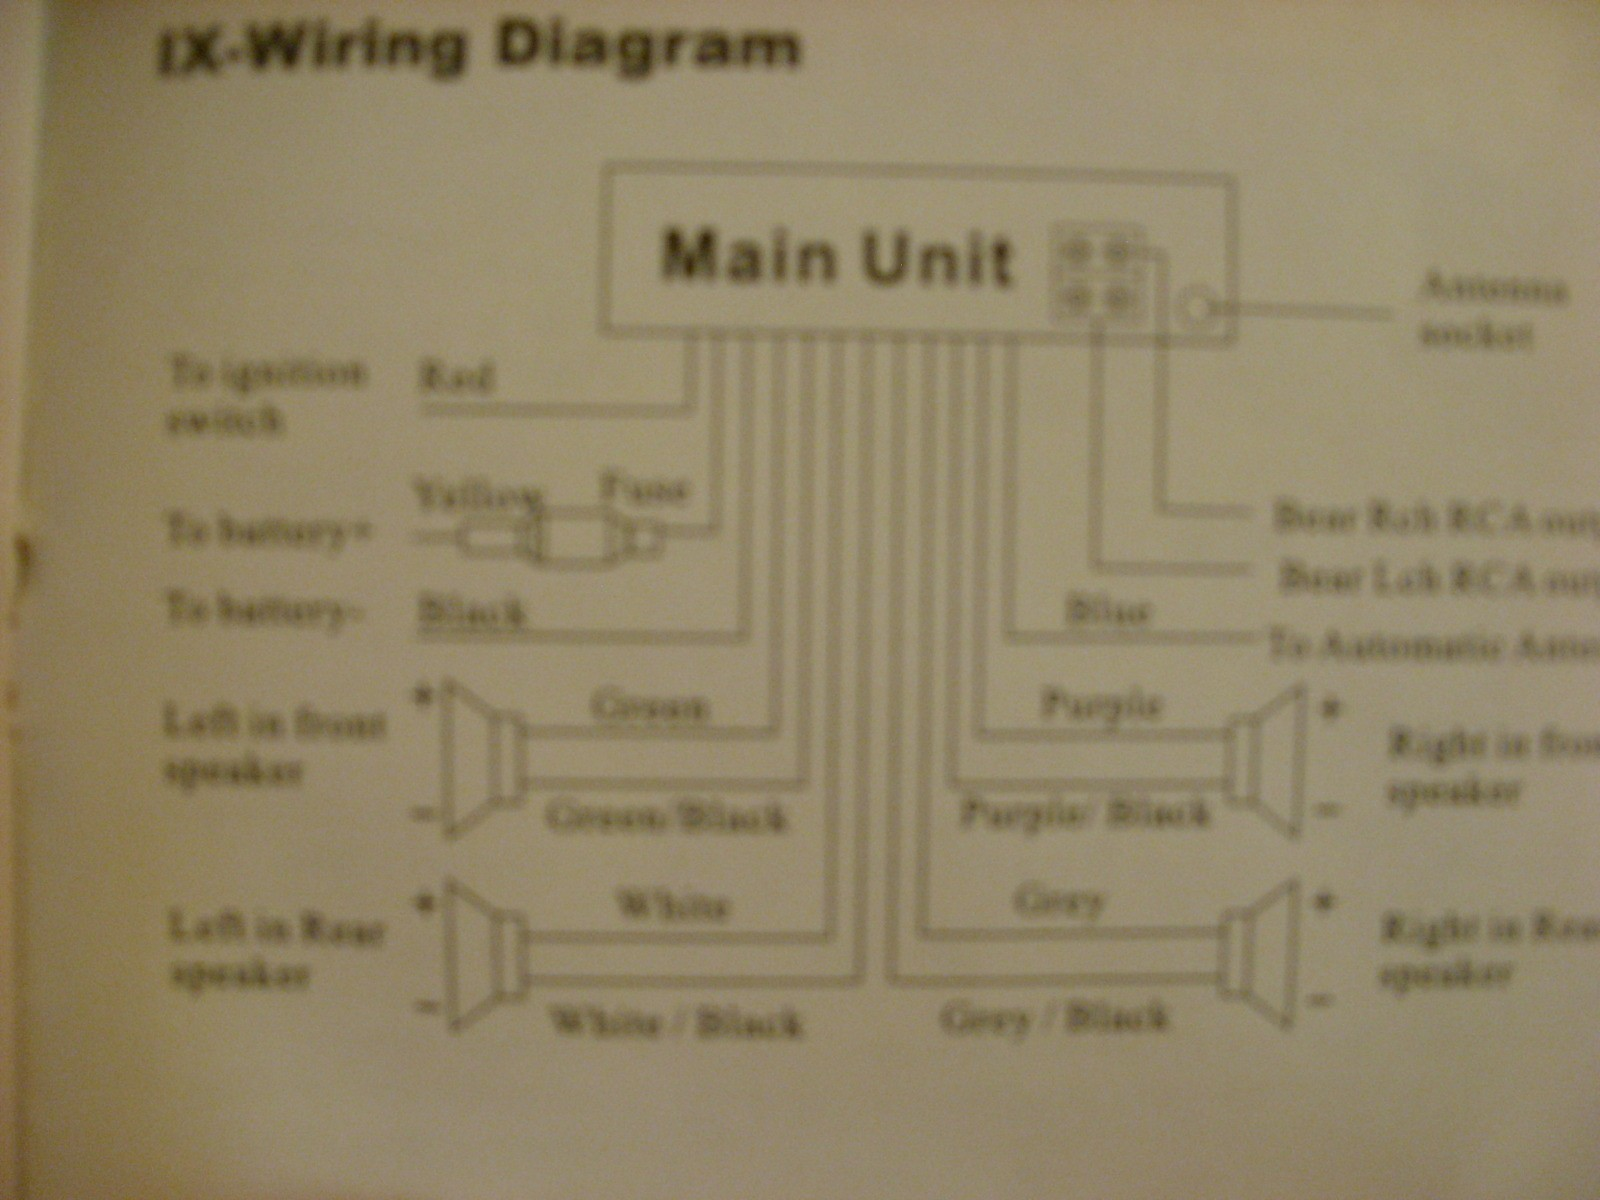 Rover 25 Engine Diagram Stunning Rover 25 Wiring Diagram Gallery Everything You Need to Of Rover 25 Engine Diagram